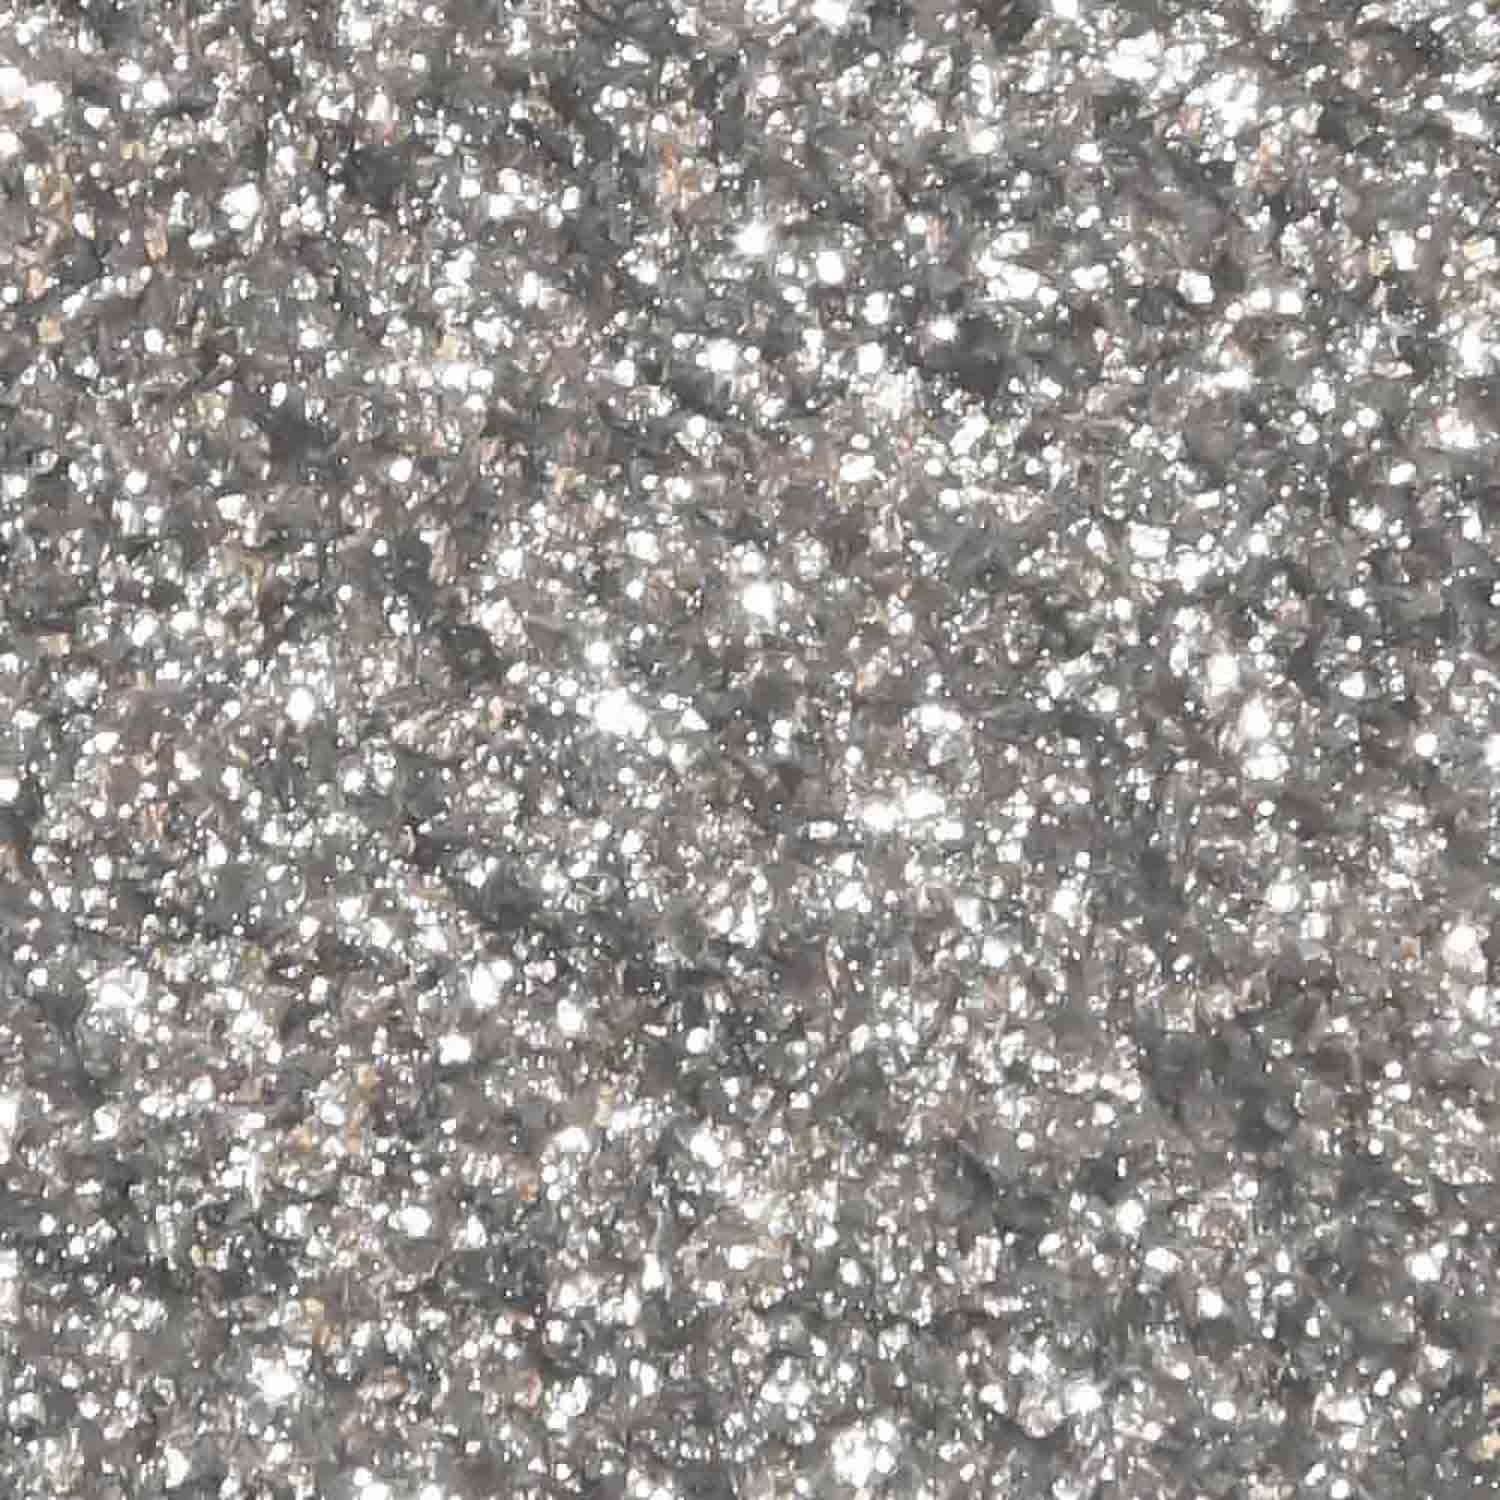 Silver Edible Jewel Dust® Glitter